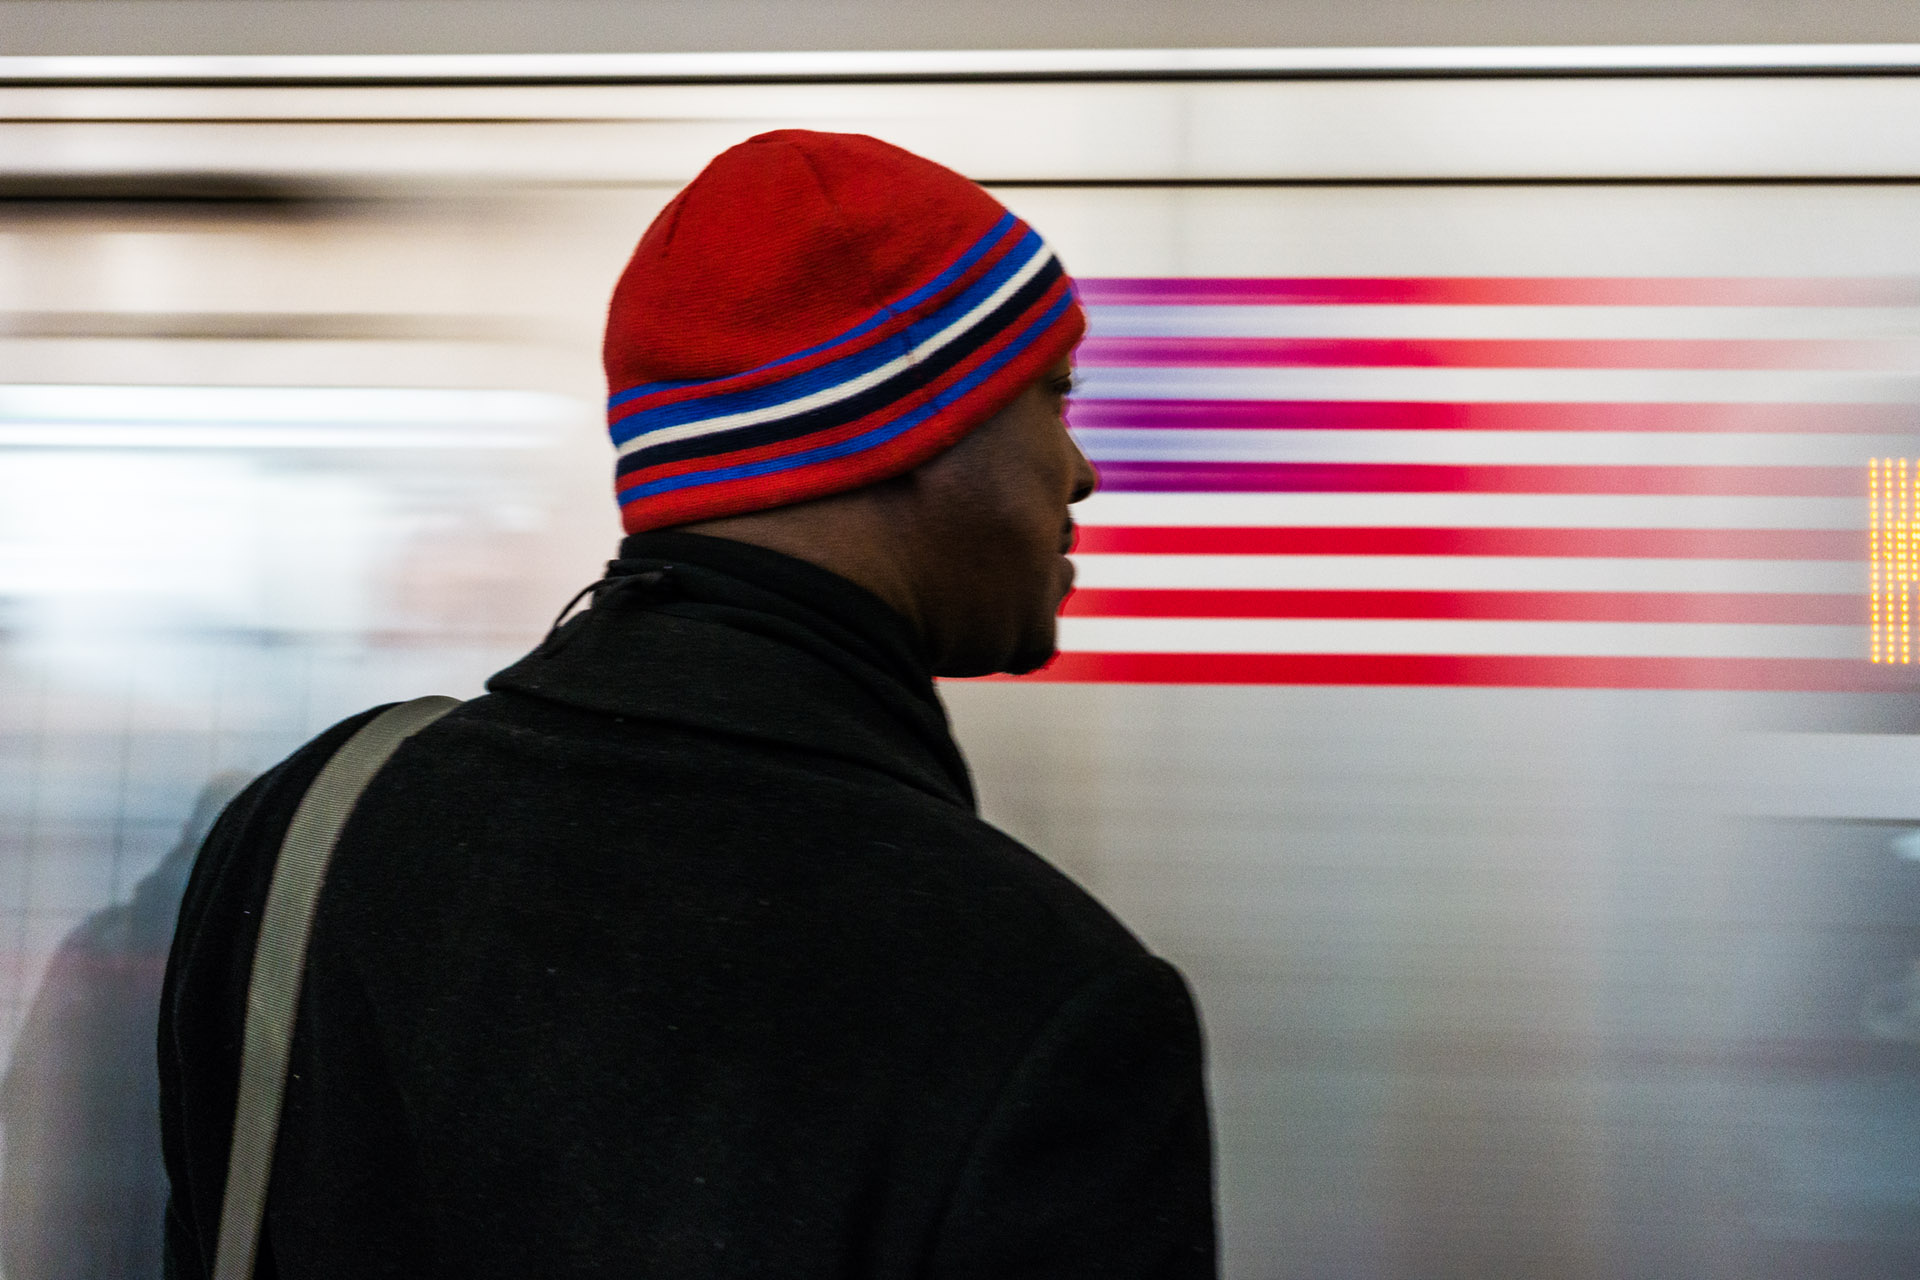 An American flag on a subway car is blurs as it speeds by a rider. Sony NEX-7 Sigma 30mm f/2.8 E ISO:400 1/20th f/4.0